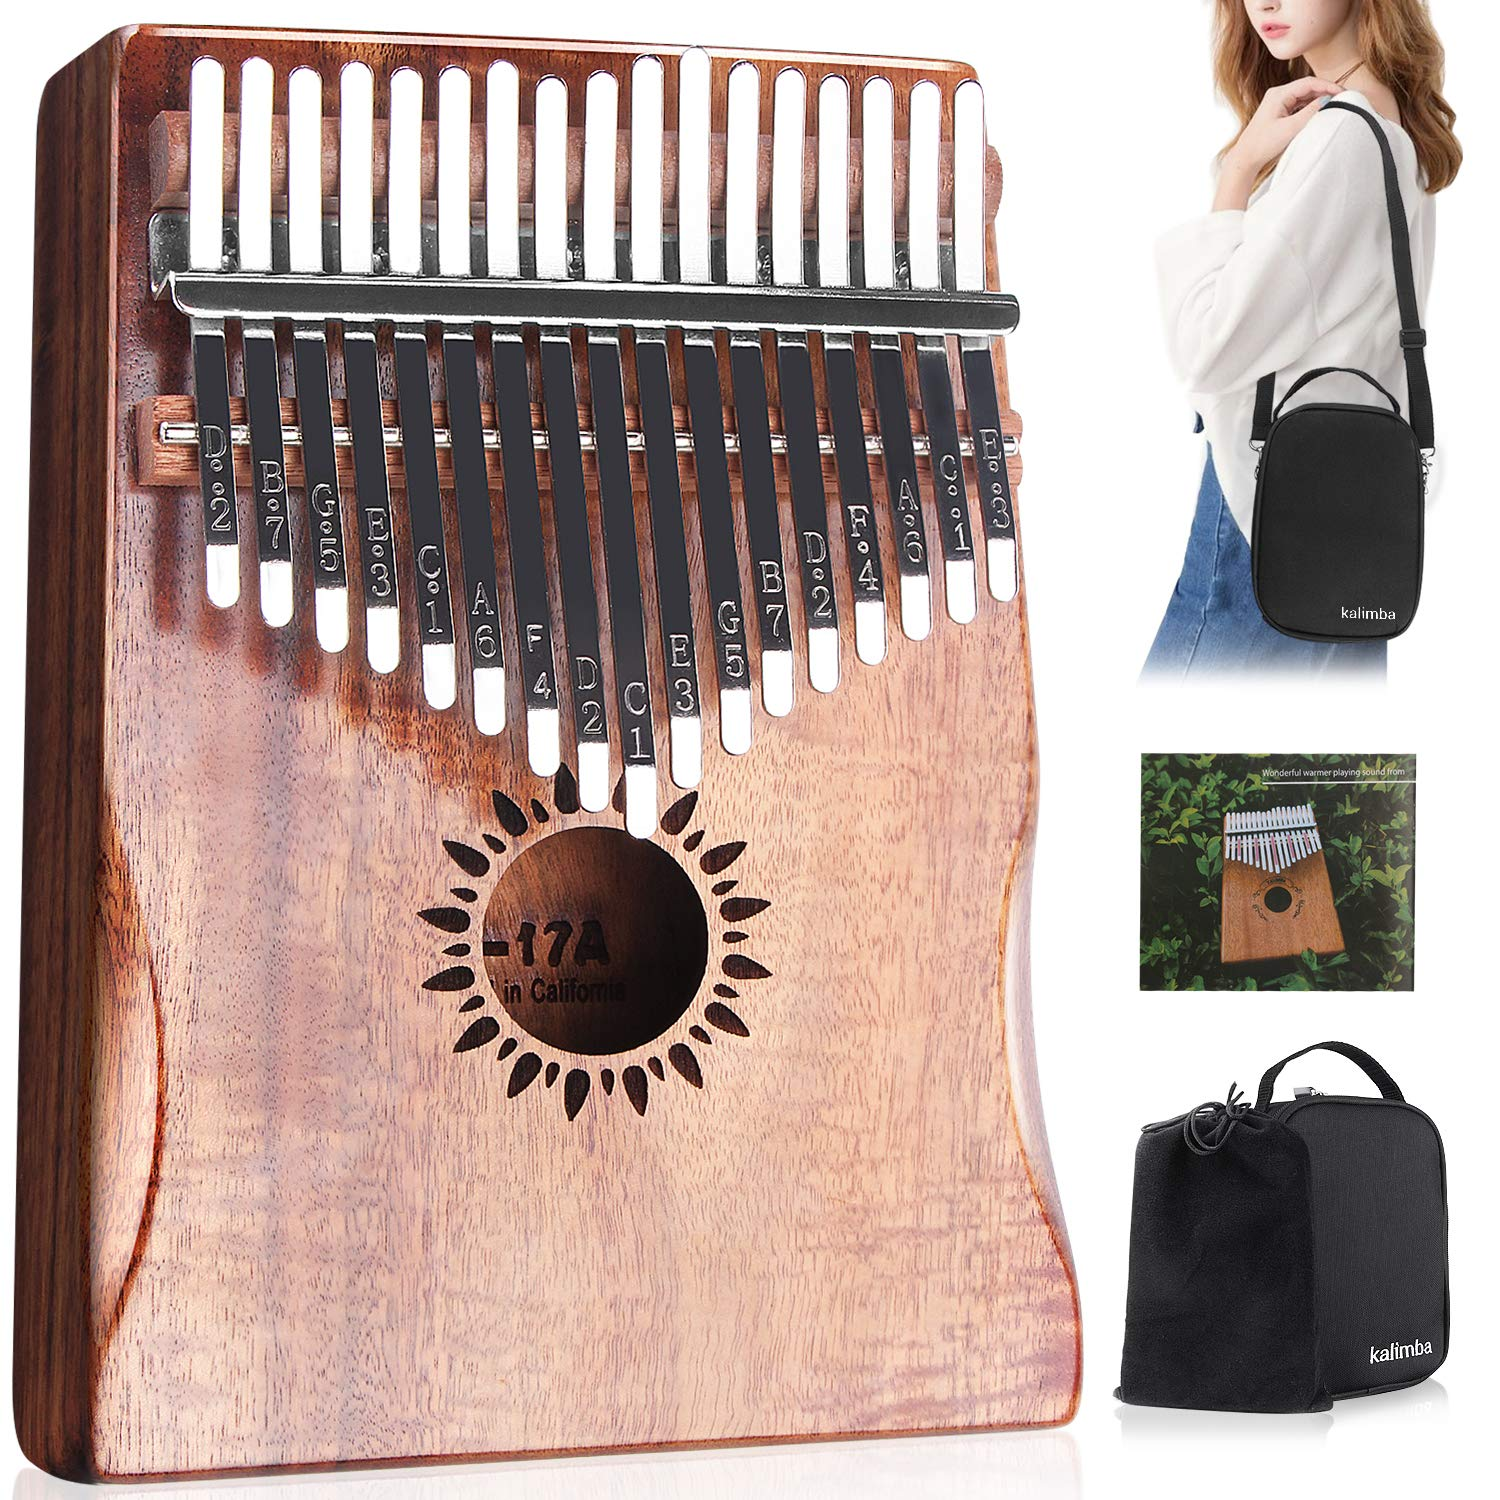 Kalimba Thumb Piano 17 Key, Portable Mbira Wood Finger Piano with 2 Bag and Sheet Music, Gifts for Kids Adult Beginners Professionals by HONHAND (Image #1)